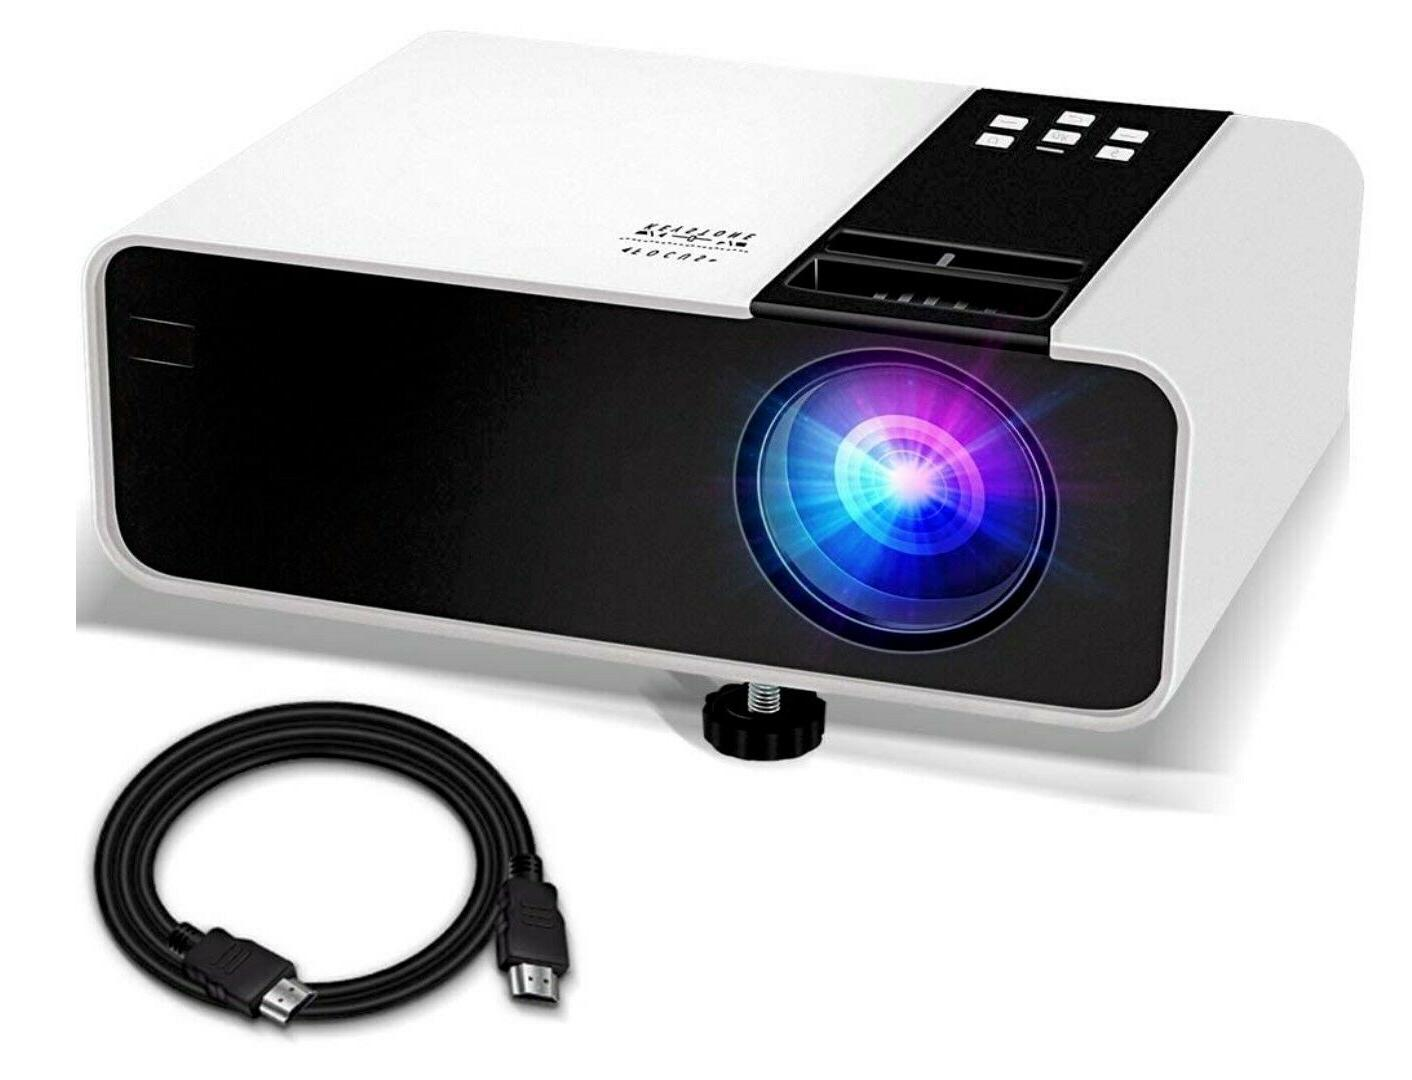 mini projector 1080p hd supported 4500 lux